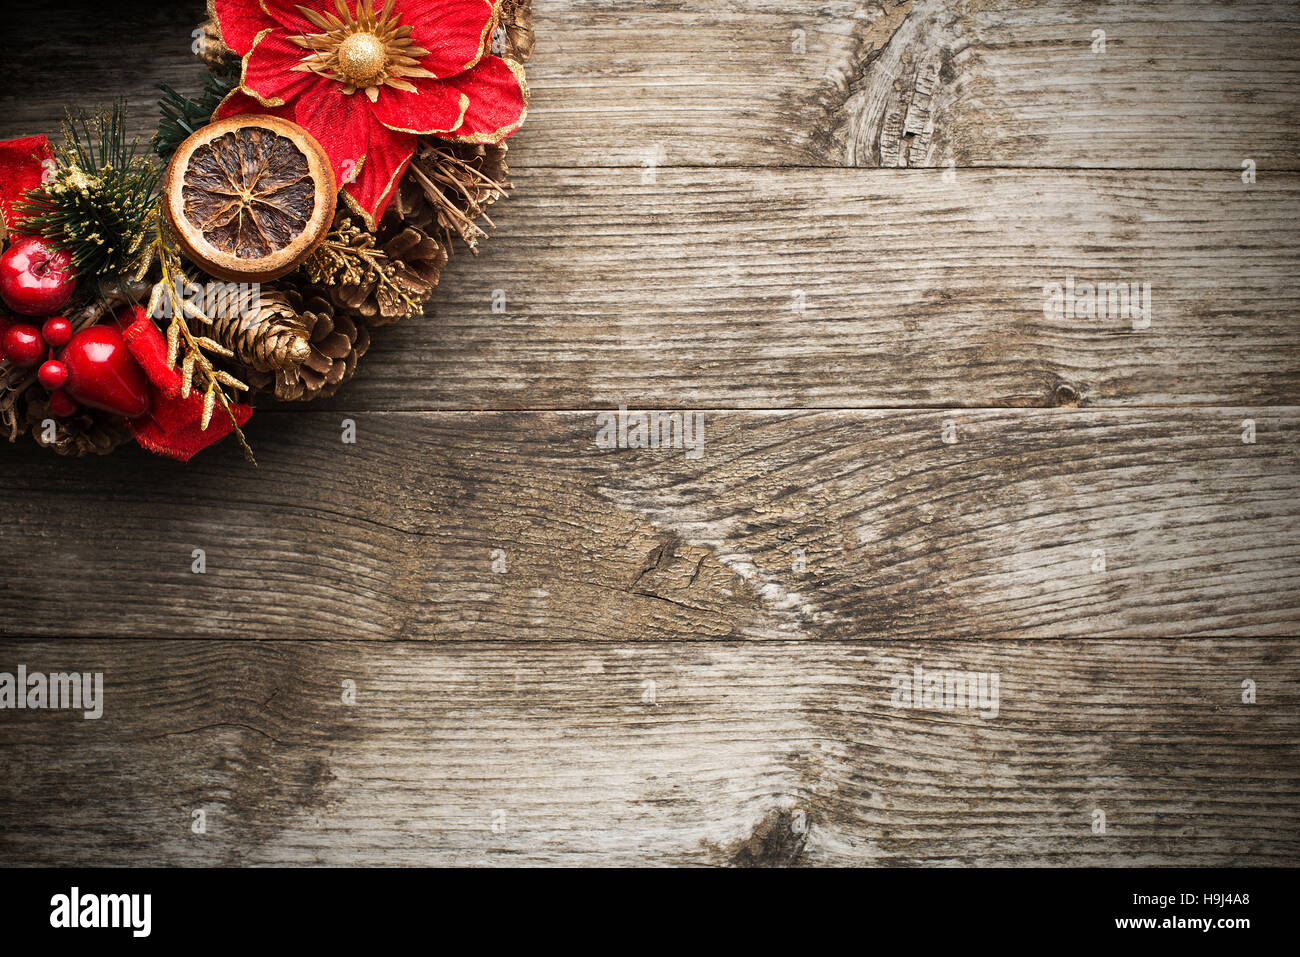 Advent Christmas wreath on wooden background close up - Stock Image